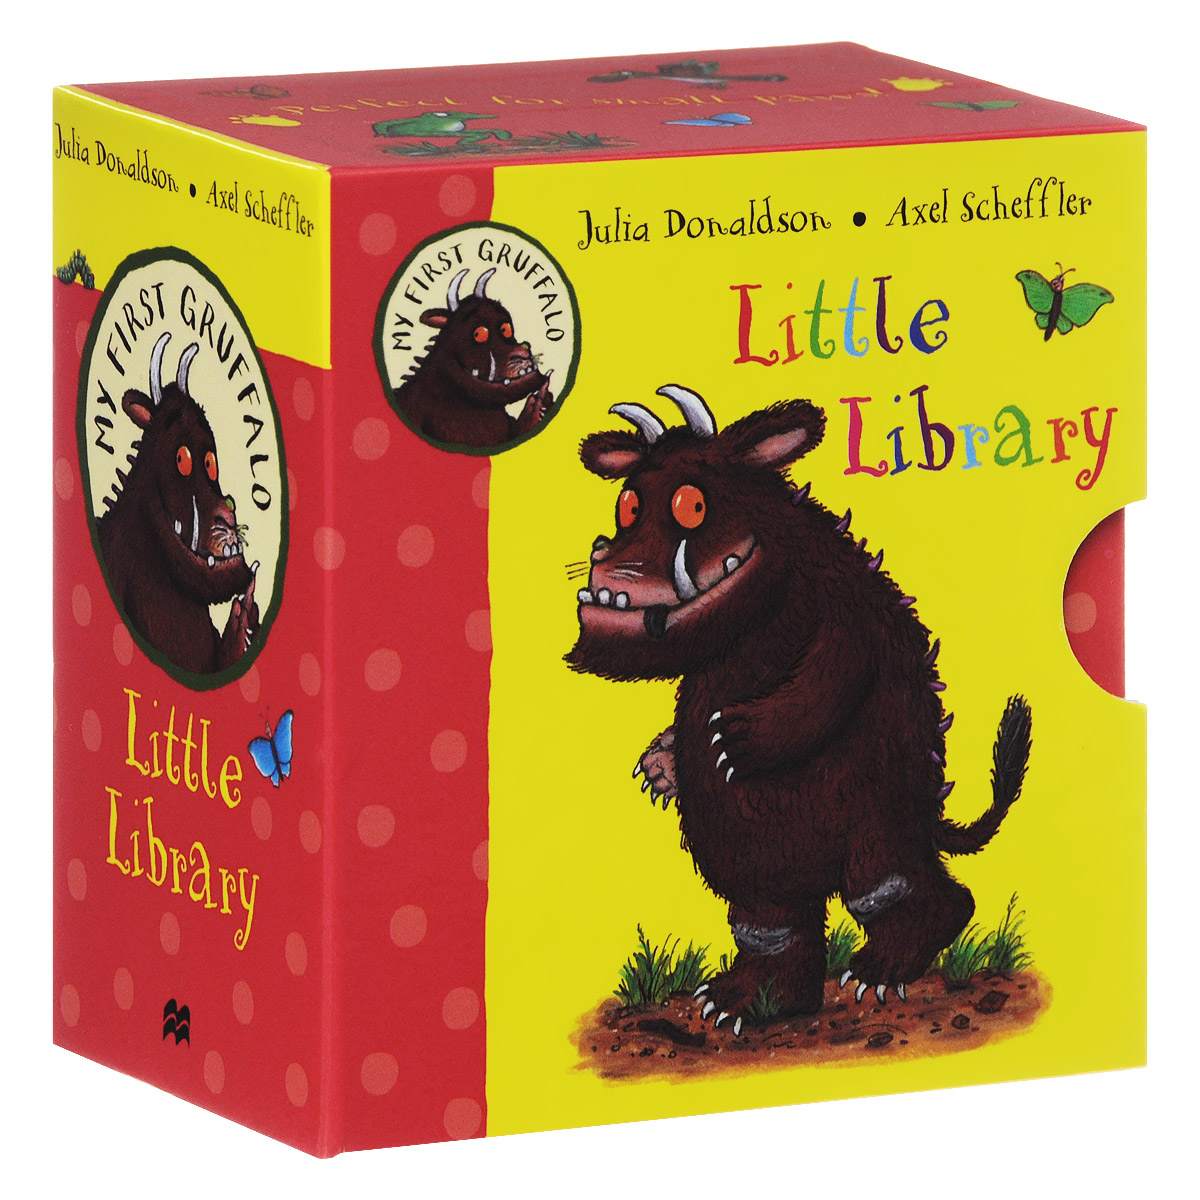 My First Gruffalo Little Library (комплект из 4 миниатюрных книжек) a decision support tool for library book inventory management